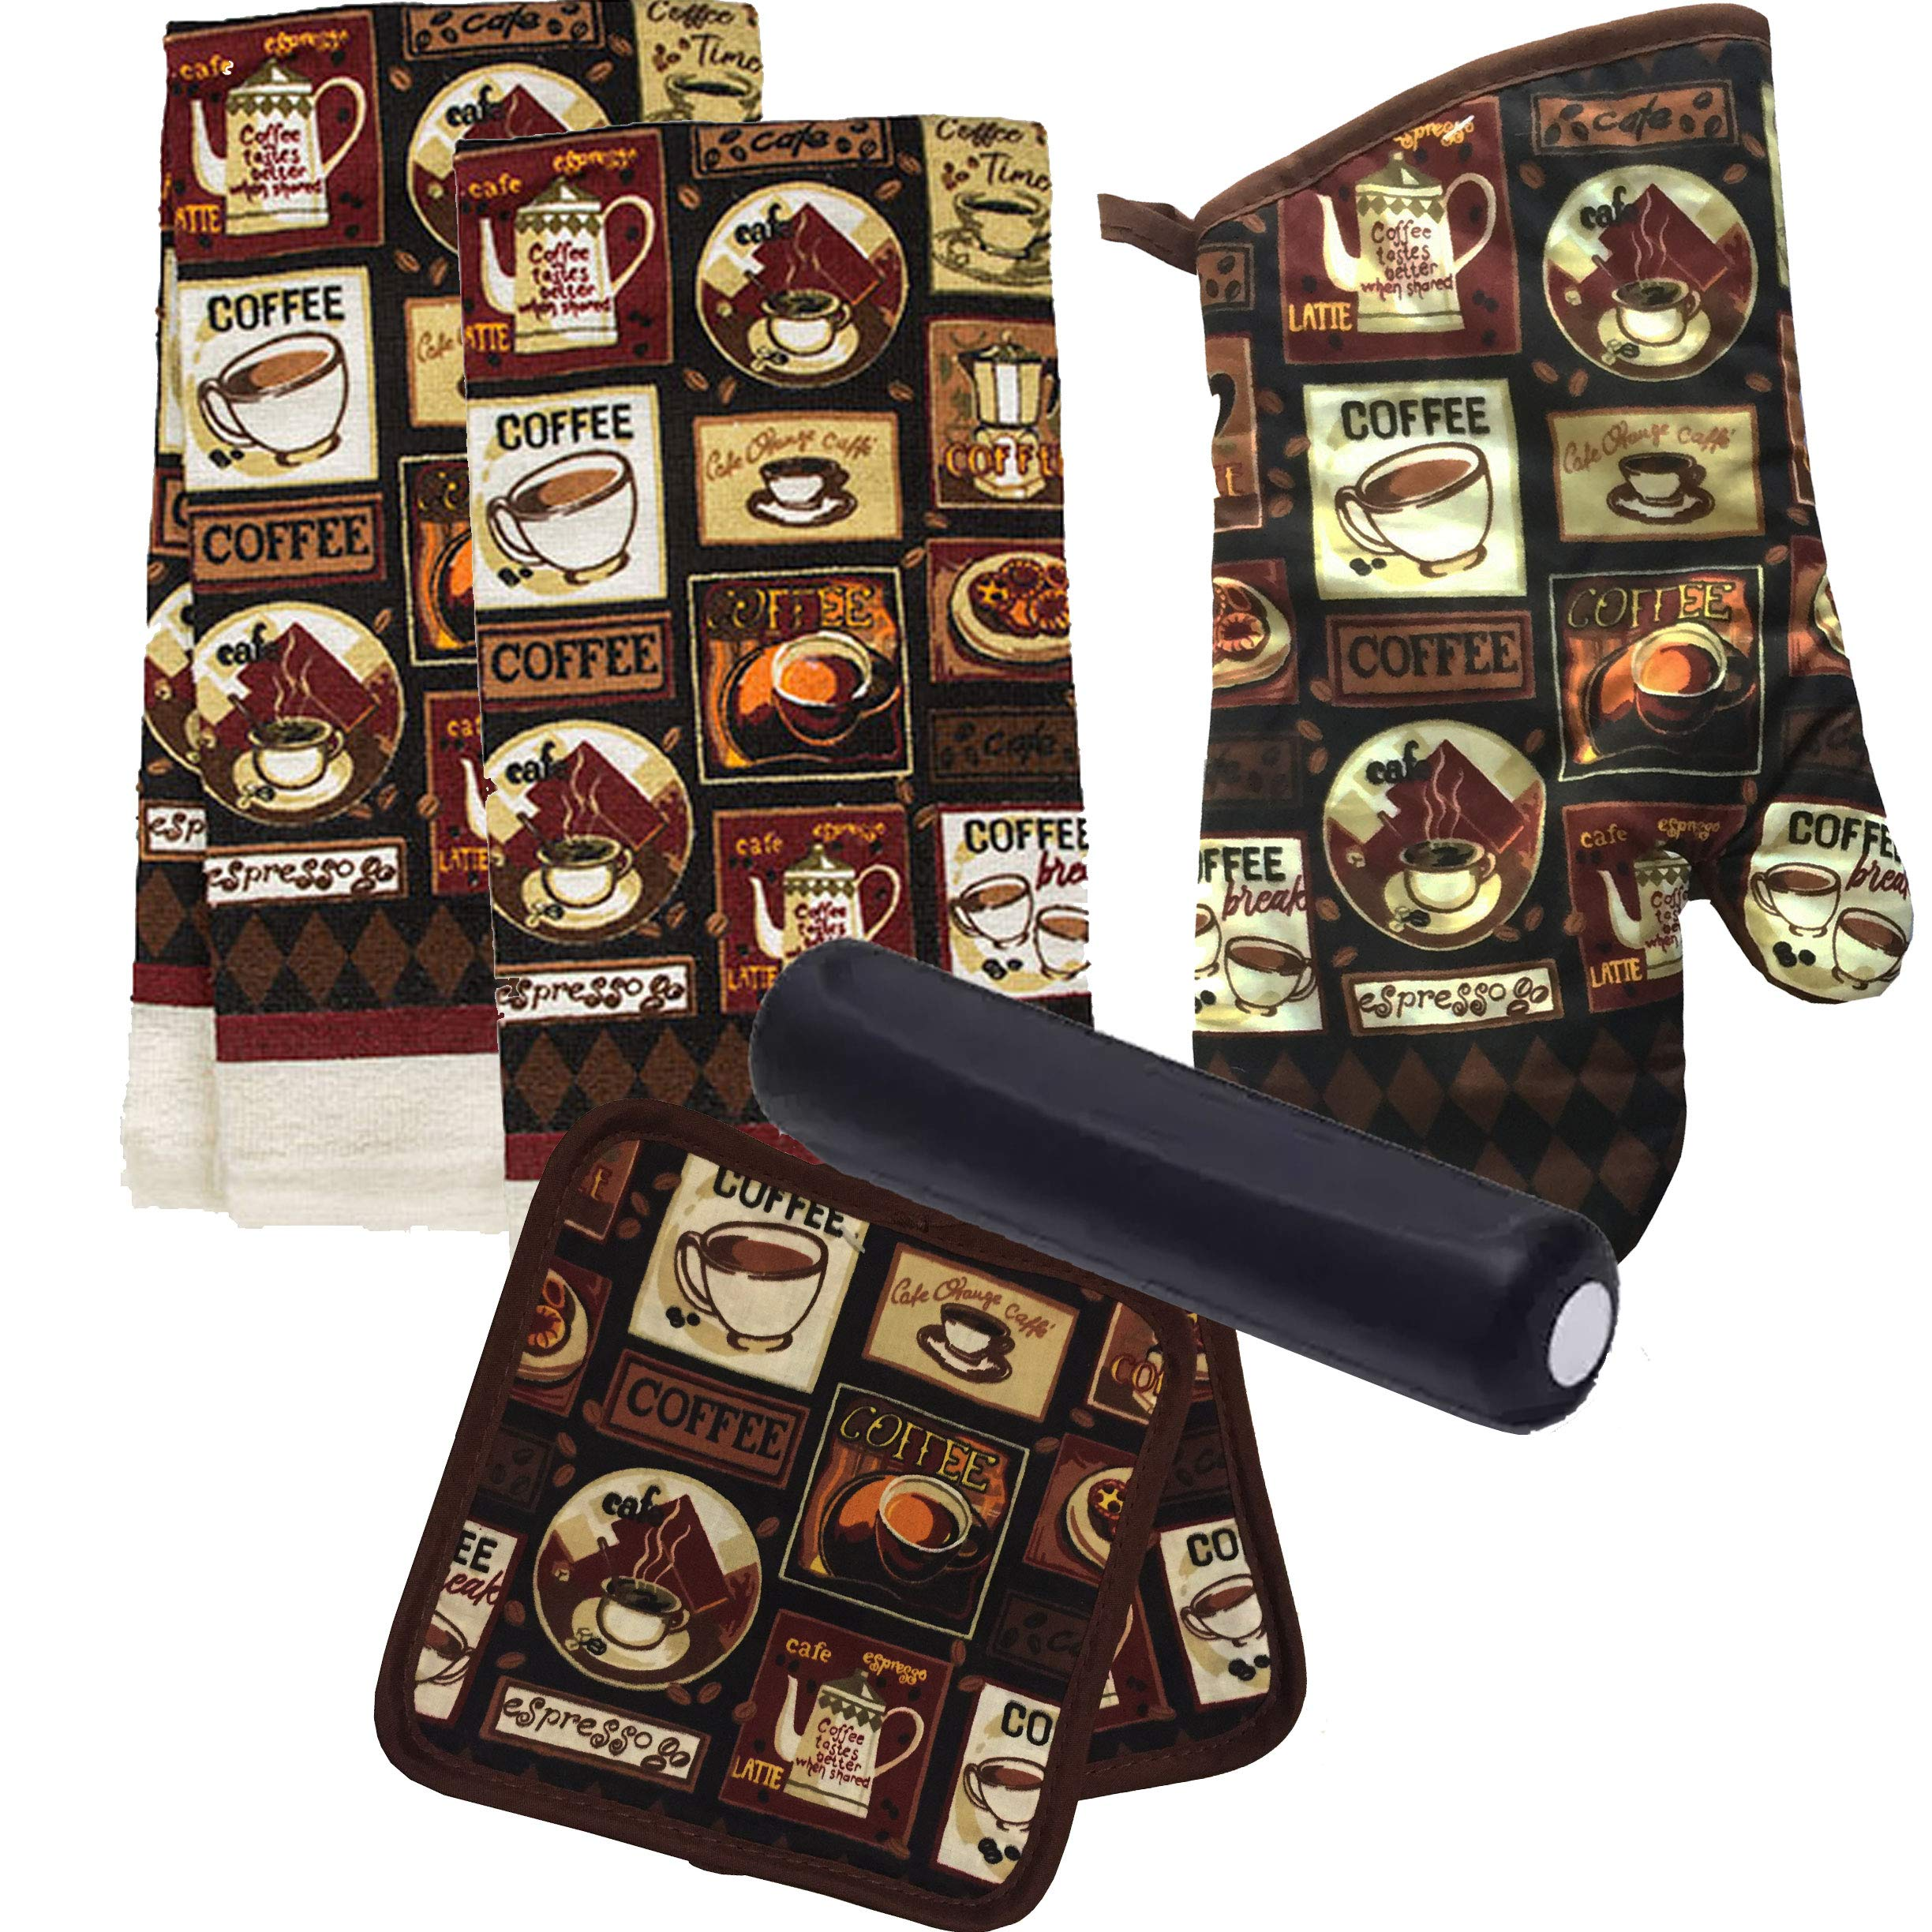 Dublin's Treasure Isle Kitchen Linen Set (Includes: one oven mitt, two pot holders, two dish towels and BONUS spoon rest) (Coffee of Ages)